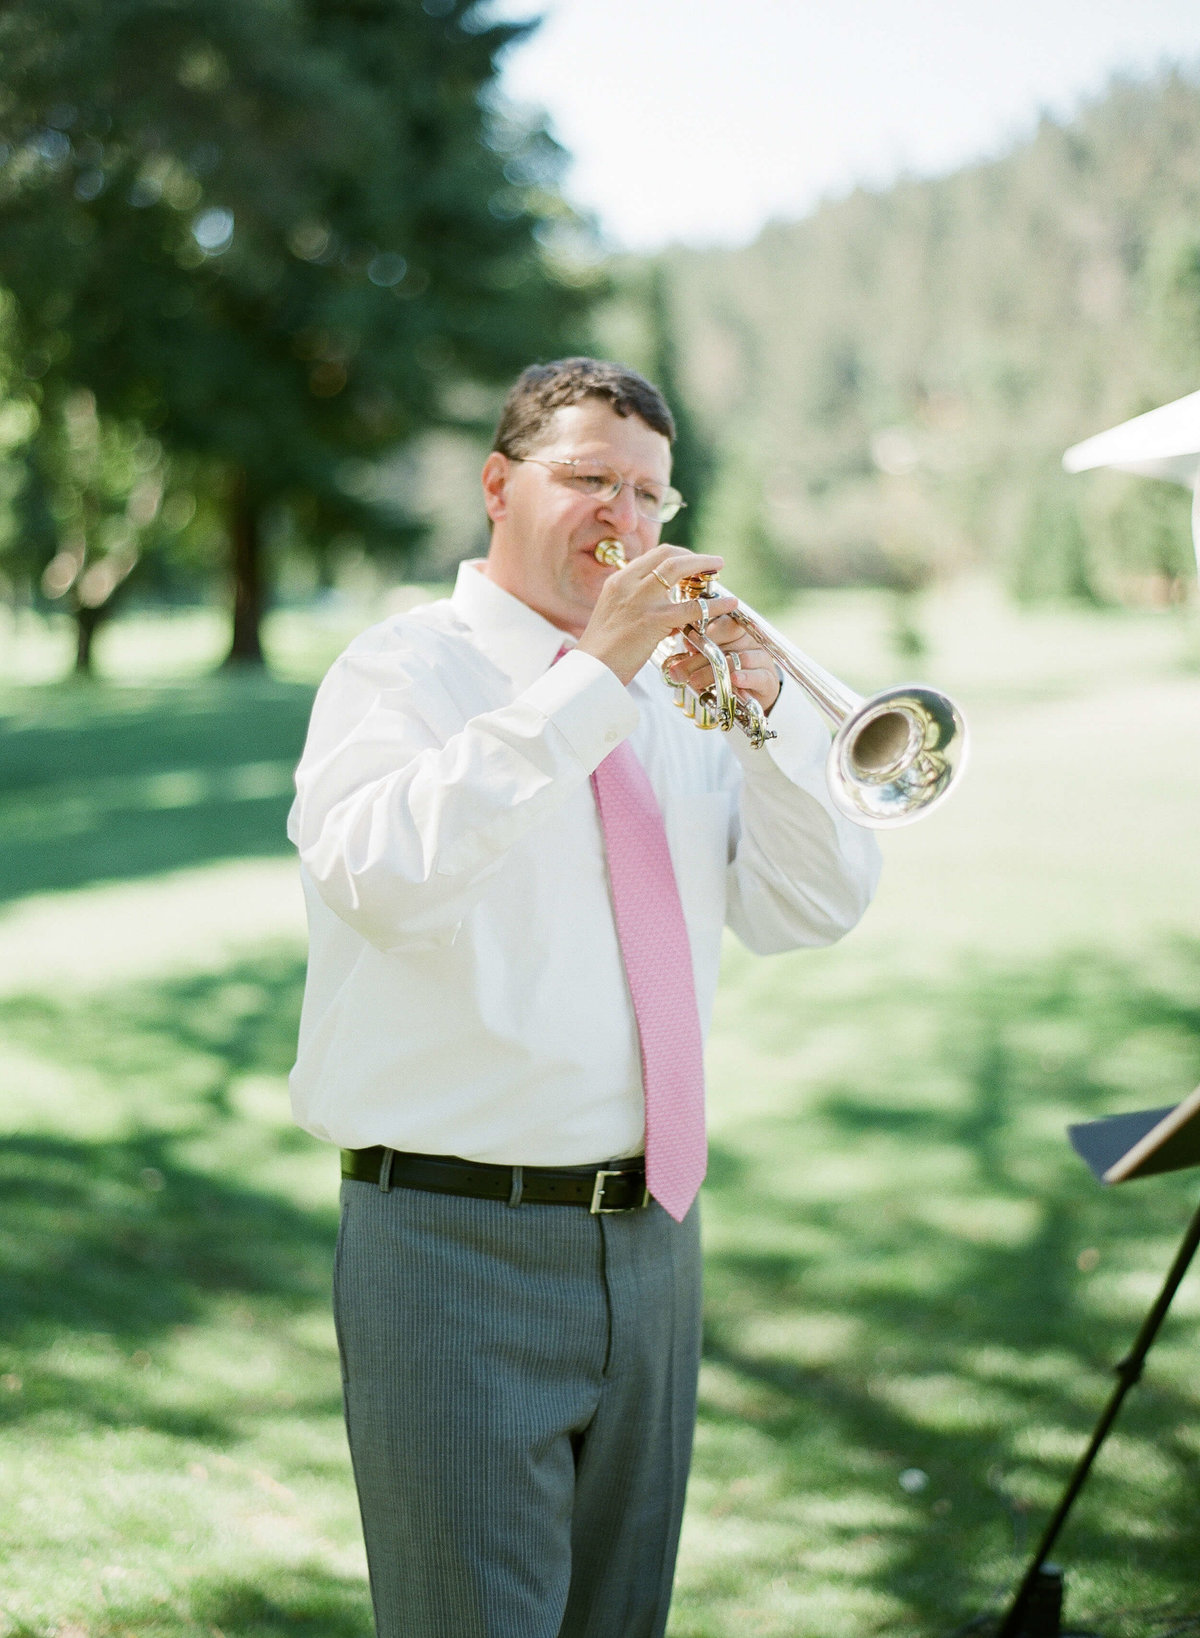 31-KTMerry-weddings-ceremony-music-NapaValley